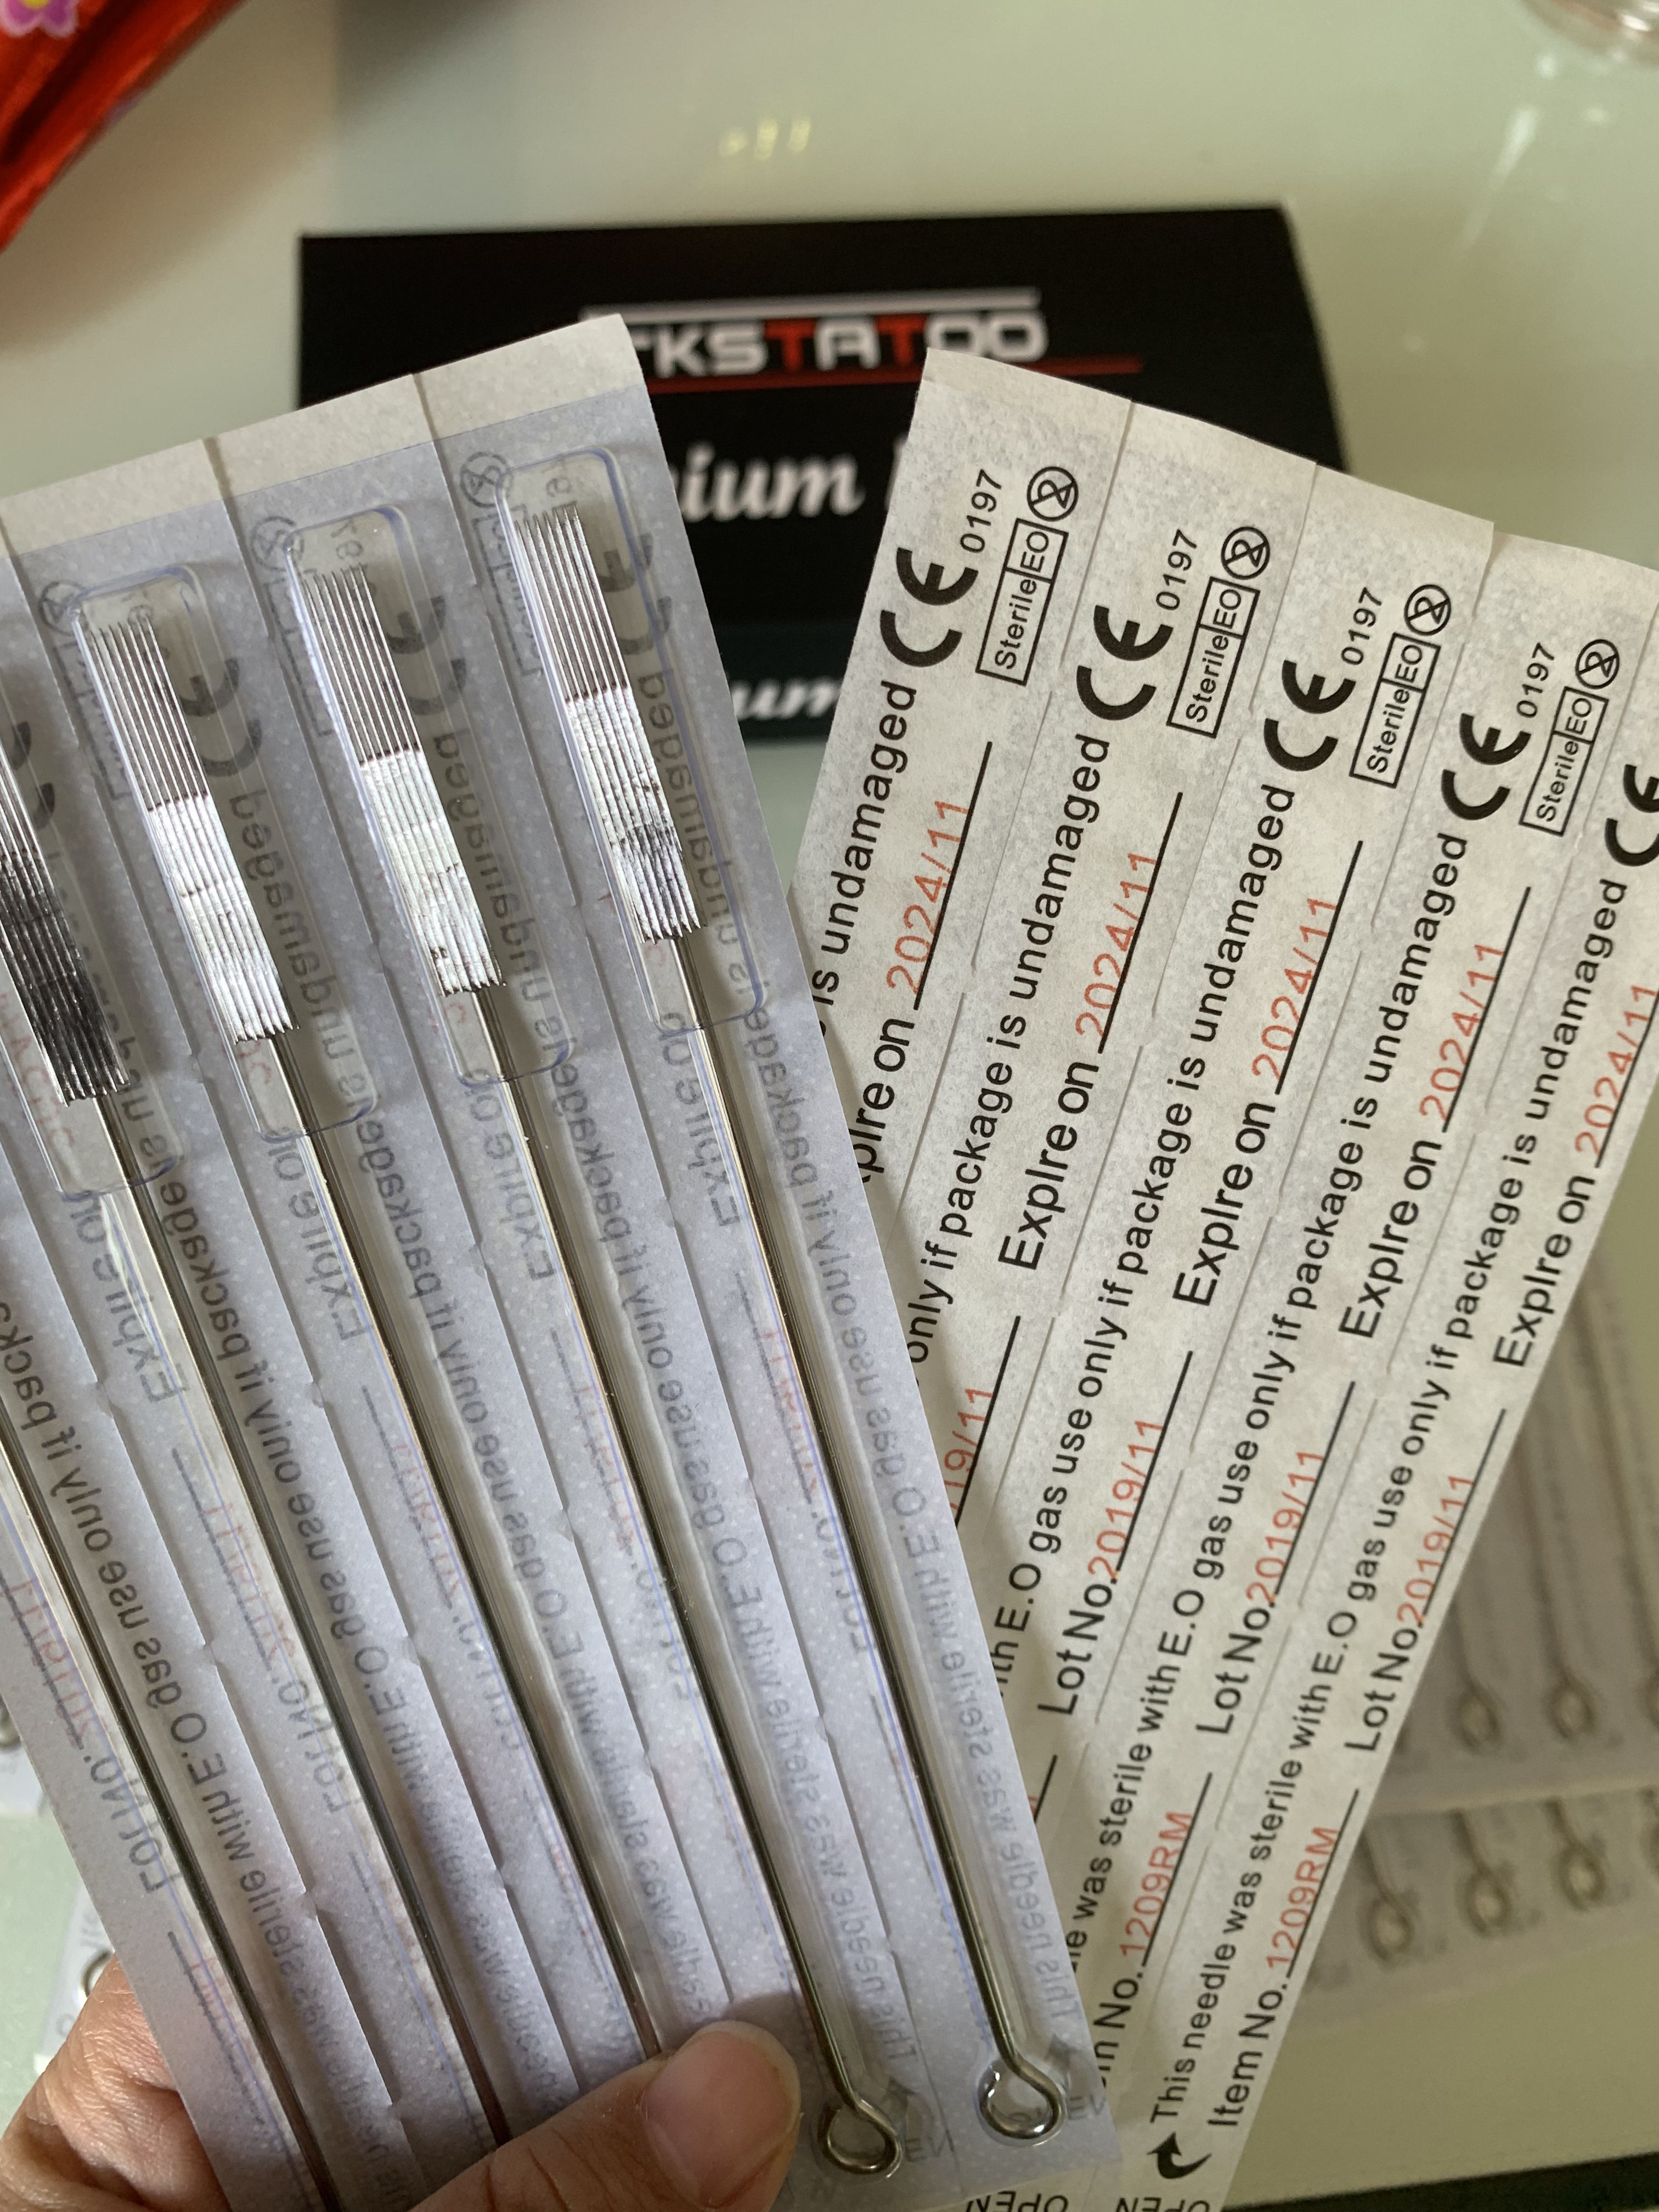 Premium Tattoo Needles On High Quality If You Are Interested In It You Can Contact Me Or Order It Or Get Sample Interesting Things Canning Tattoo Needles